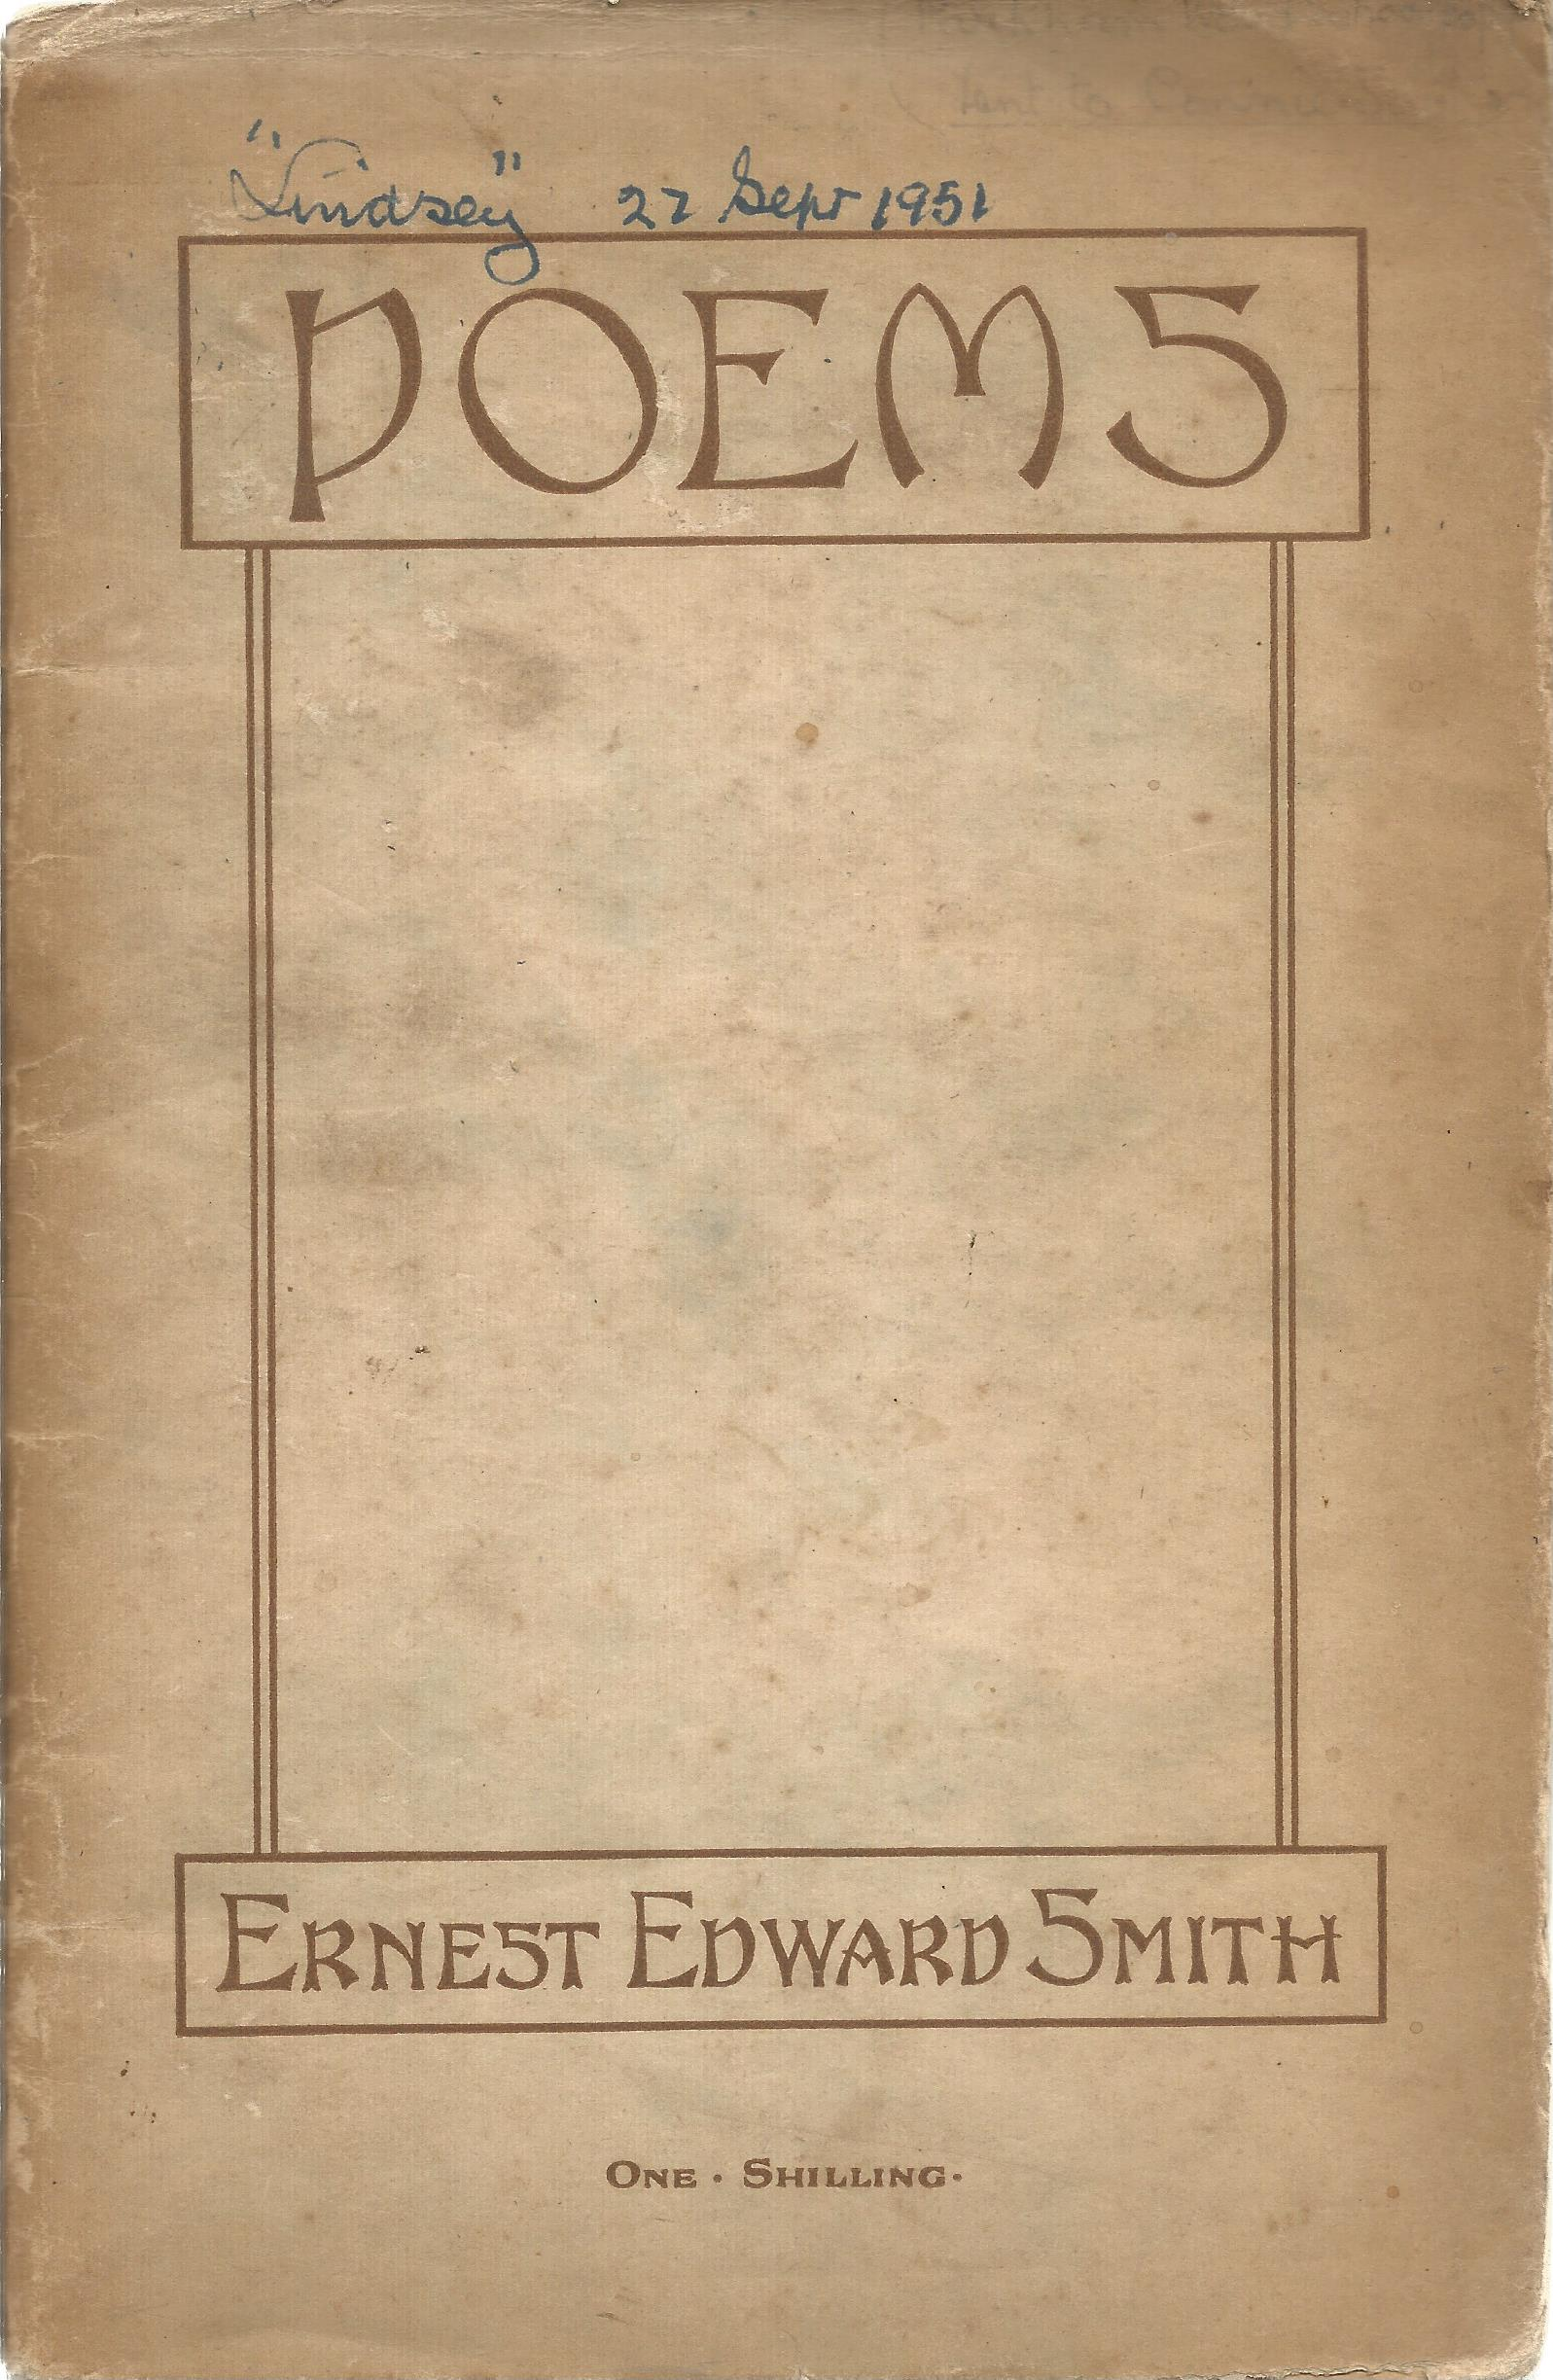 Ern Edward Smith Paperback Book Poems 1925 Unsigned but Includes a Hand Written Letter signed by Ern